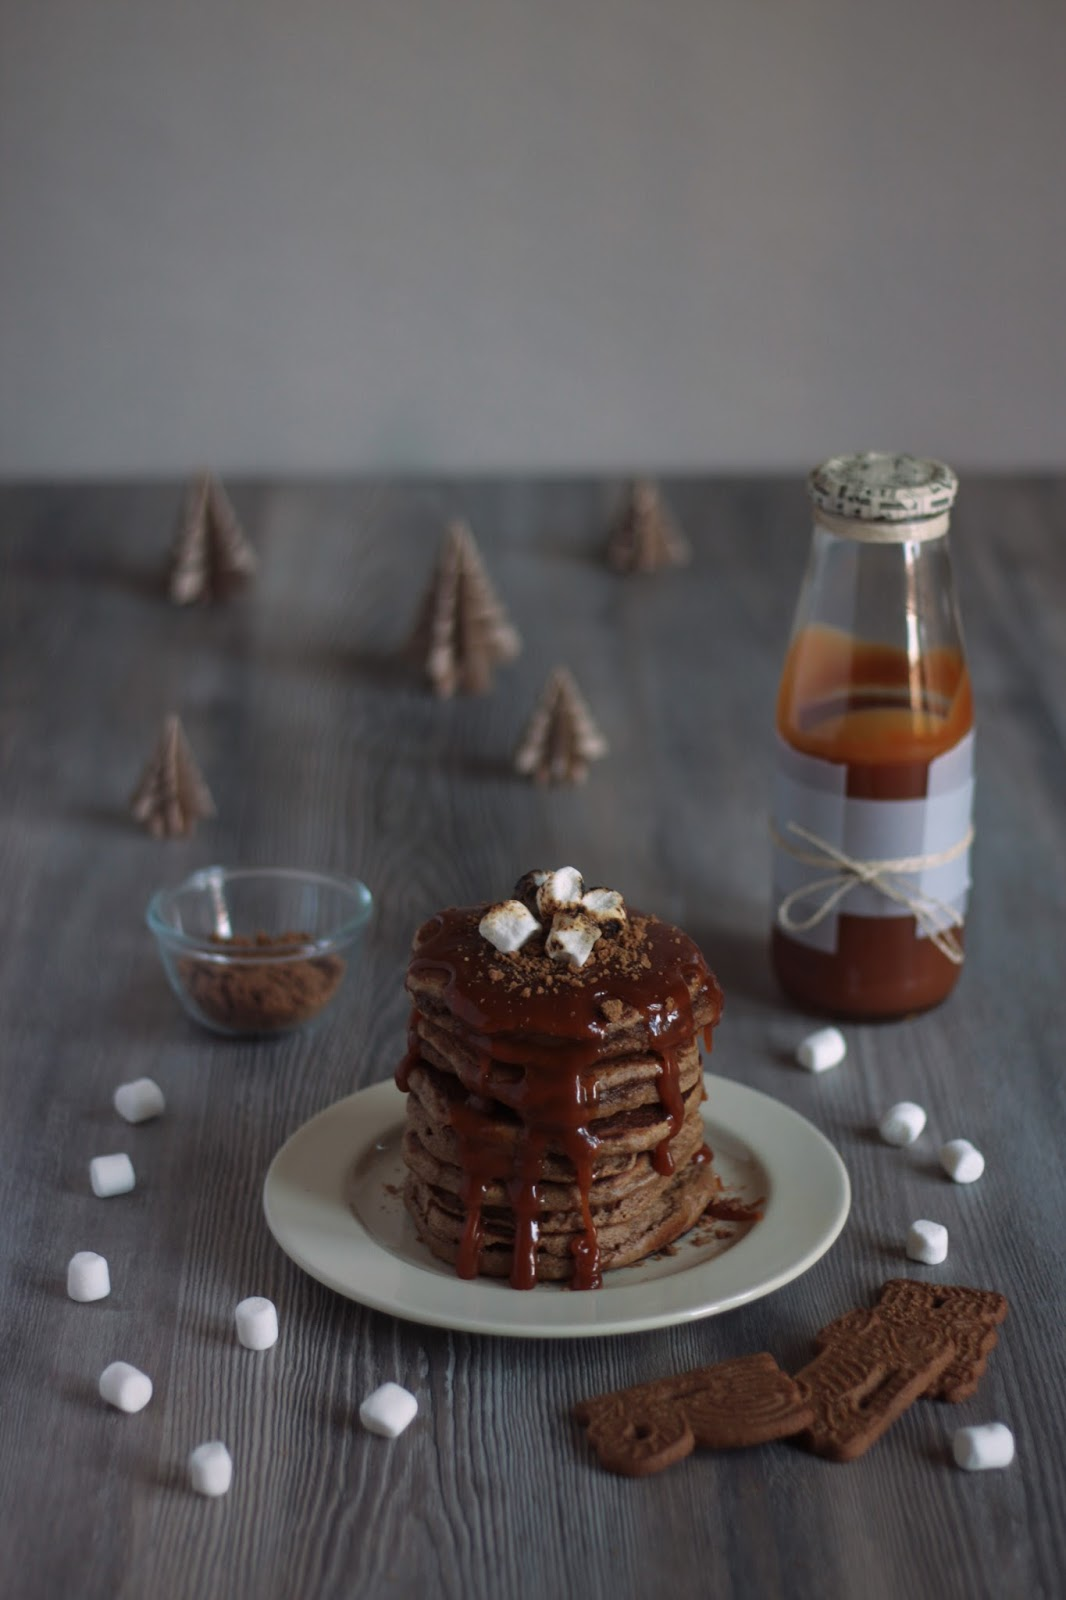 Spekulatius pancakes with homemade caramel sauce and roasted marshmallows - brought to you by Pancake Stories